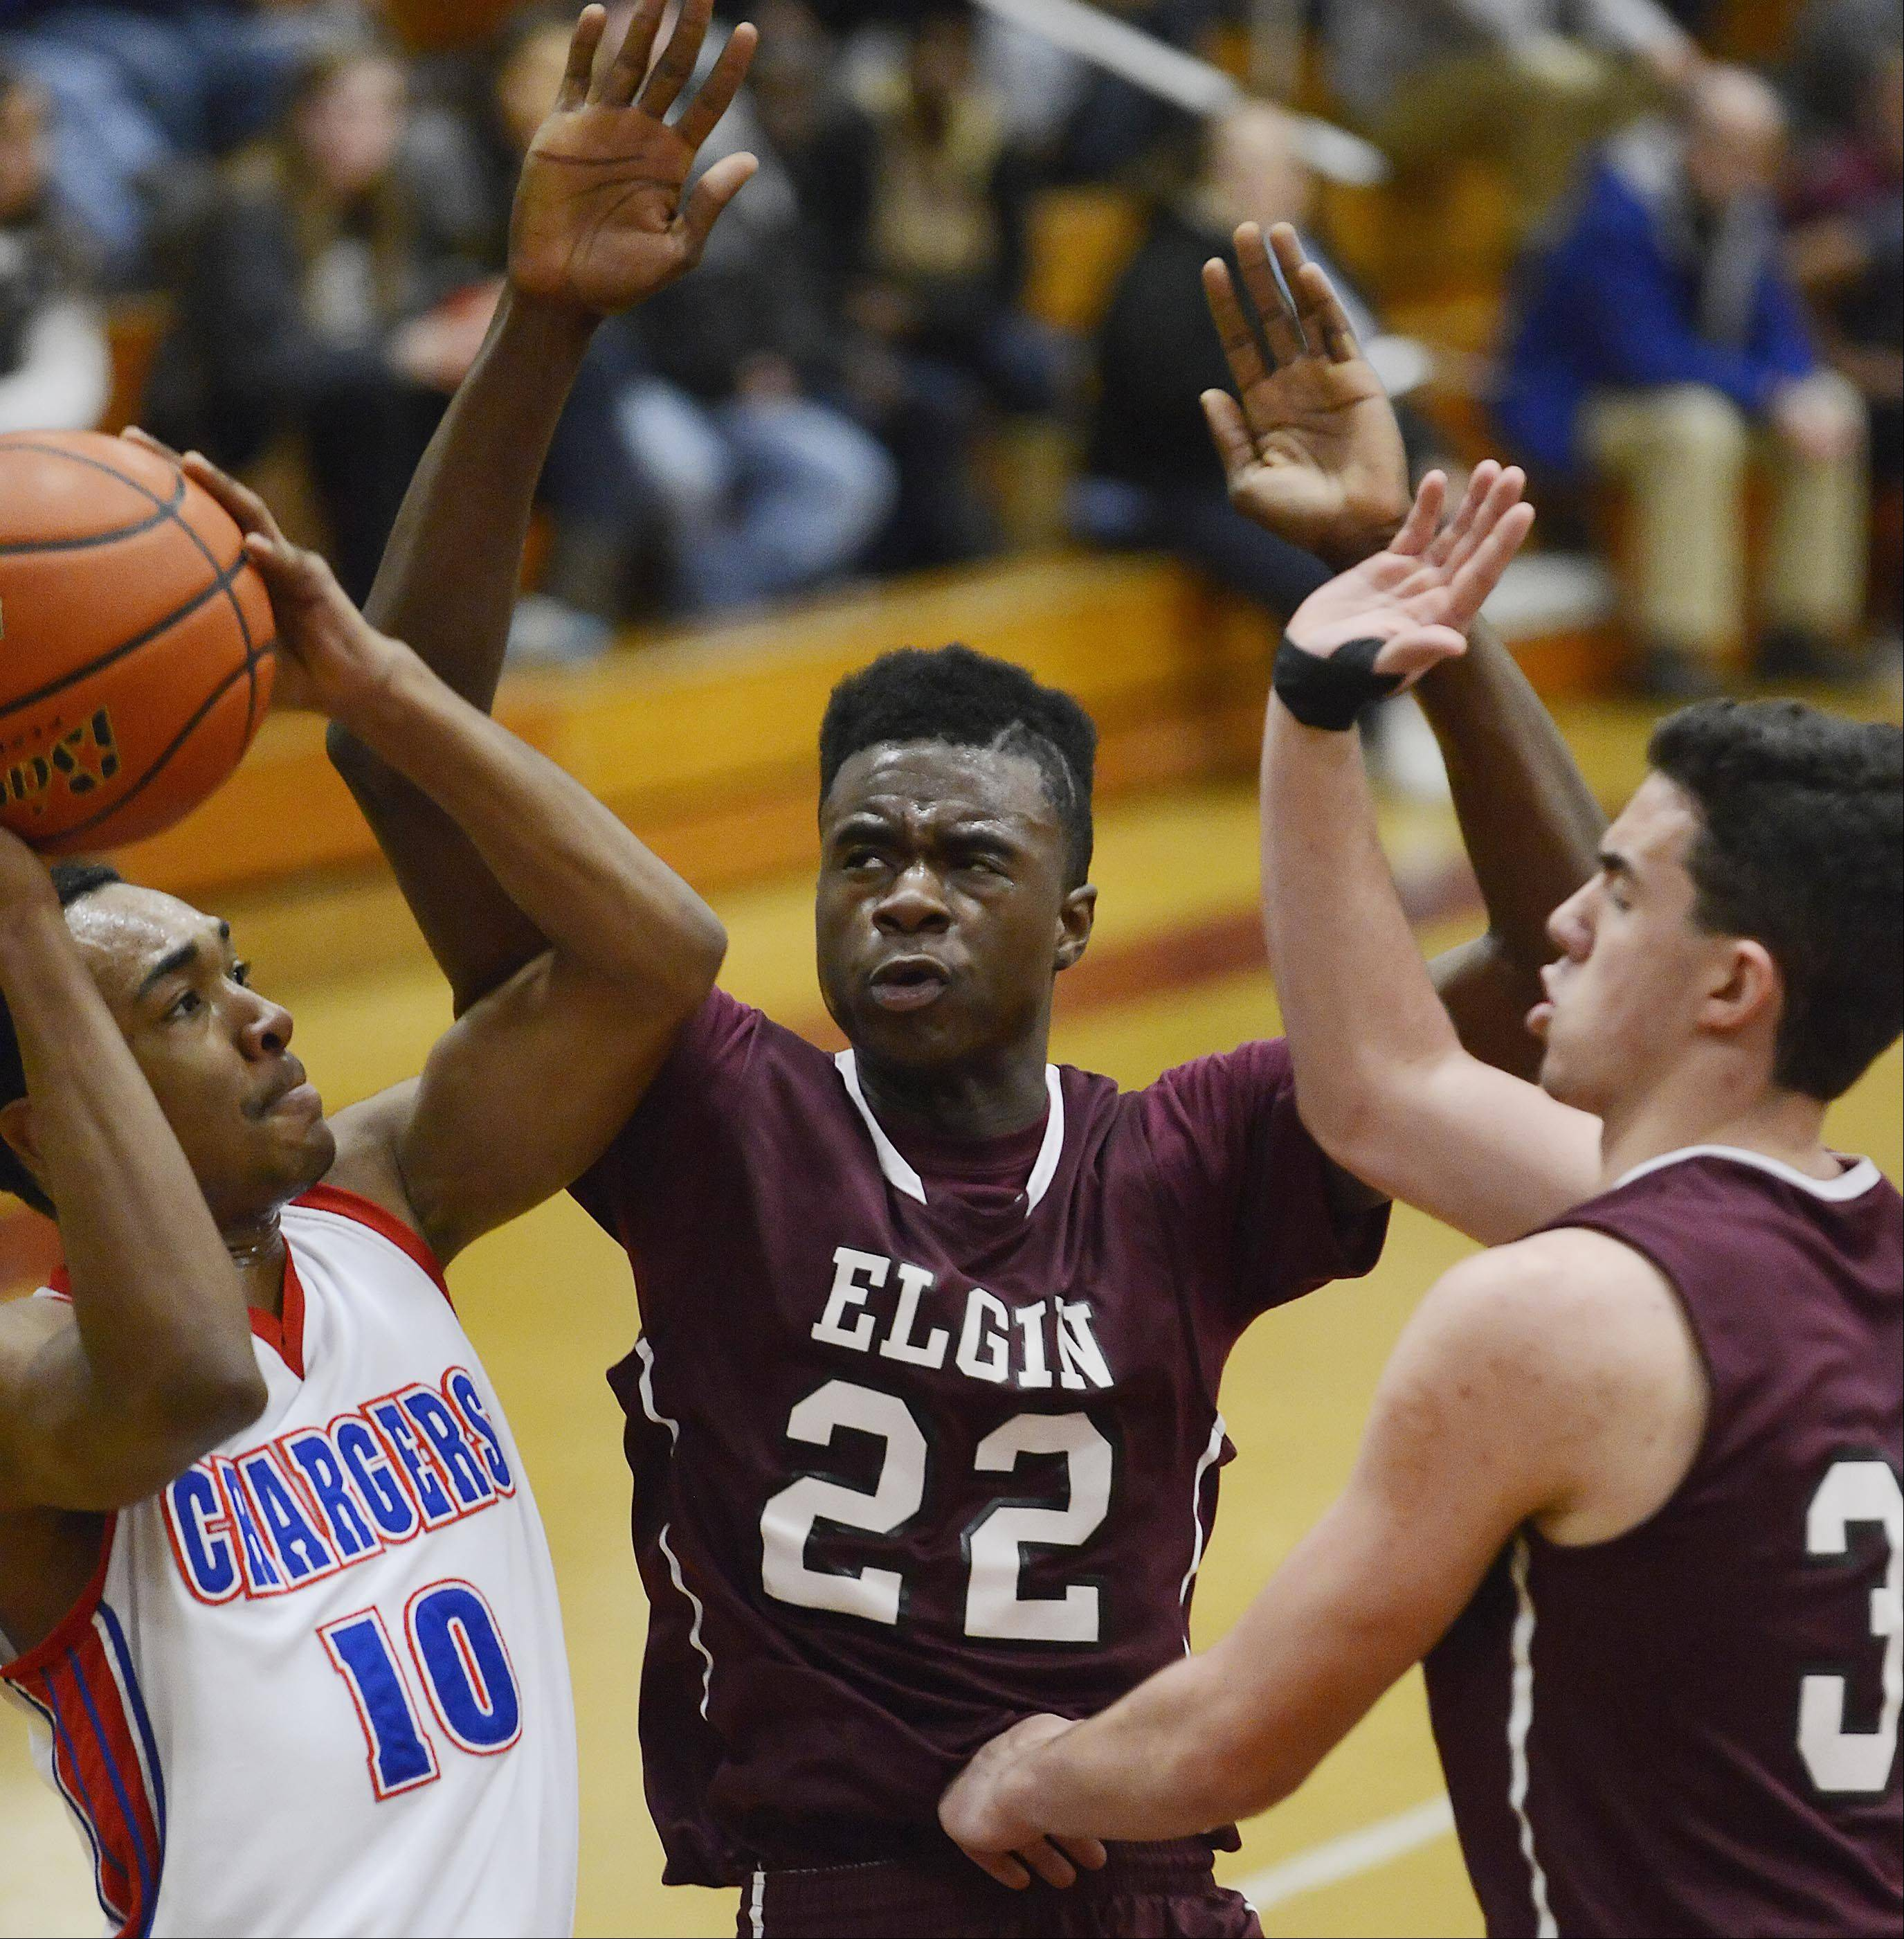 Images: Elgin vs. Dundee-Crown boys basketball